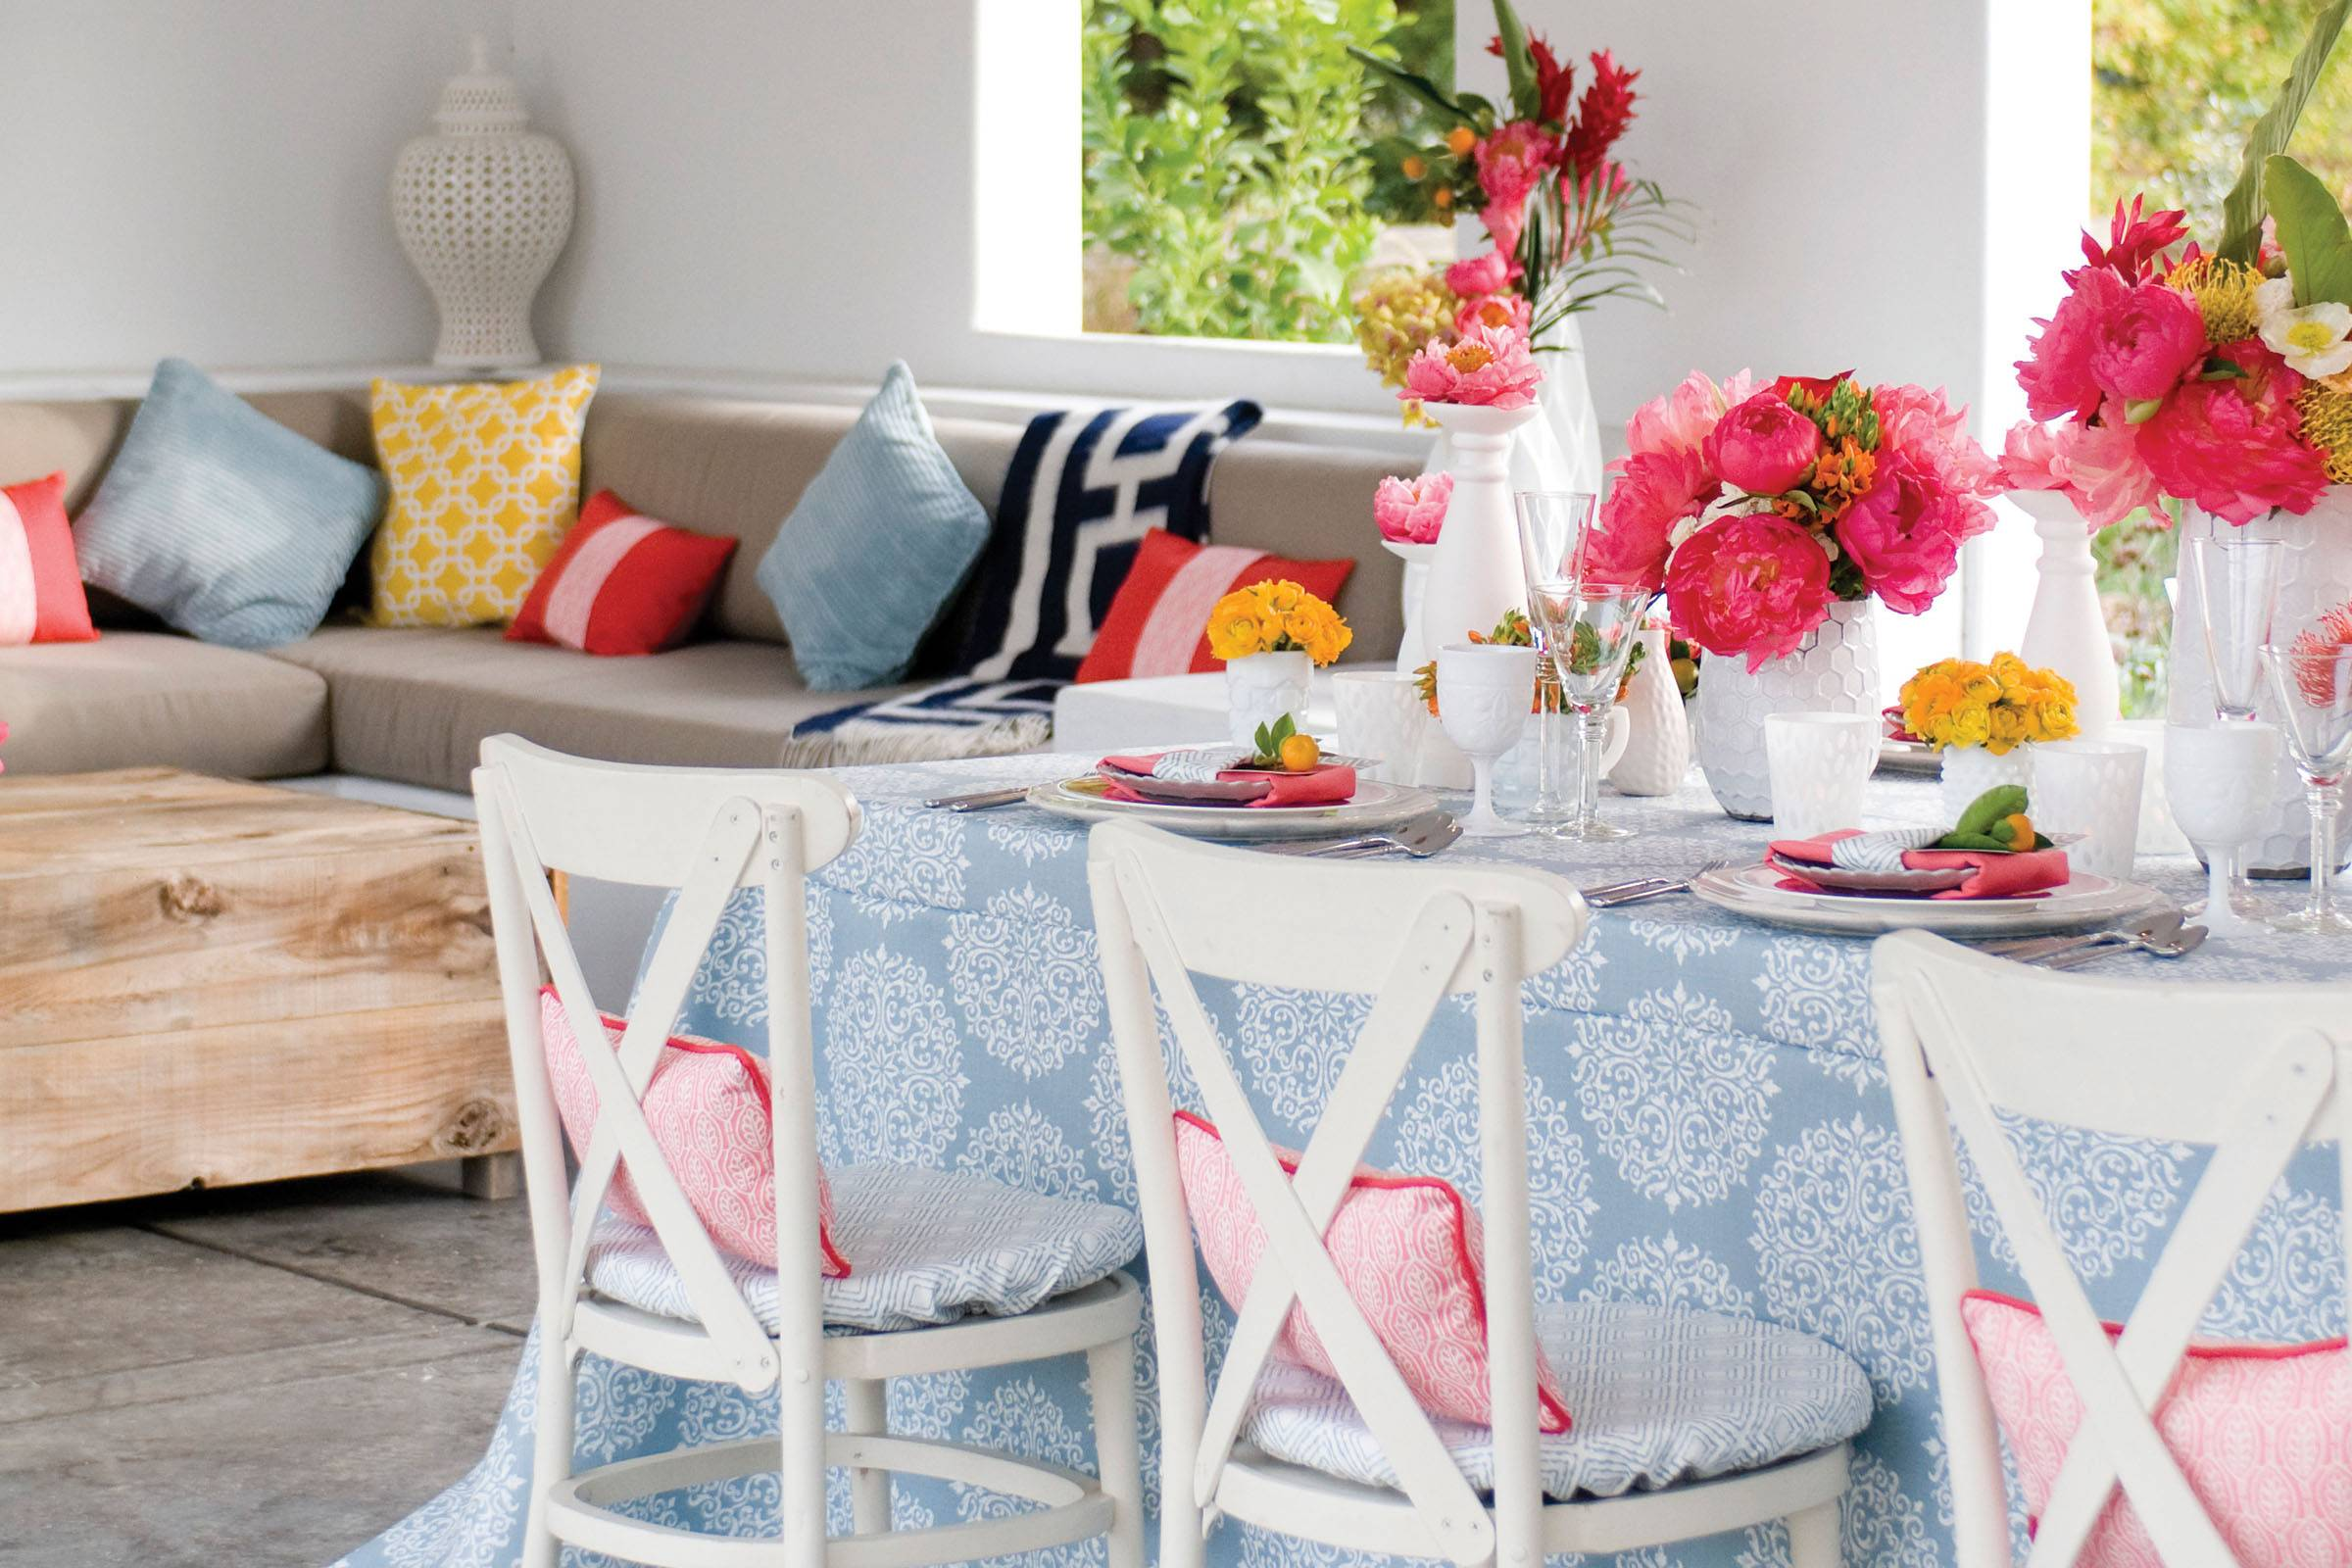 Multi-patterned linens with vibrant pink florals